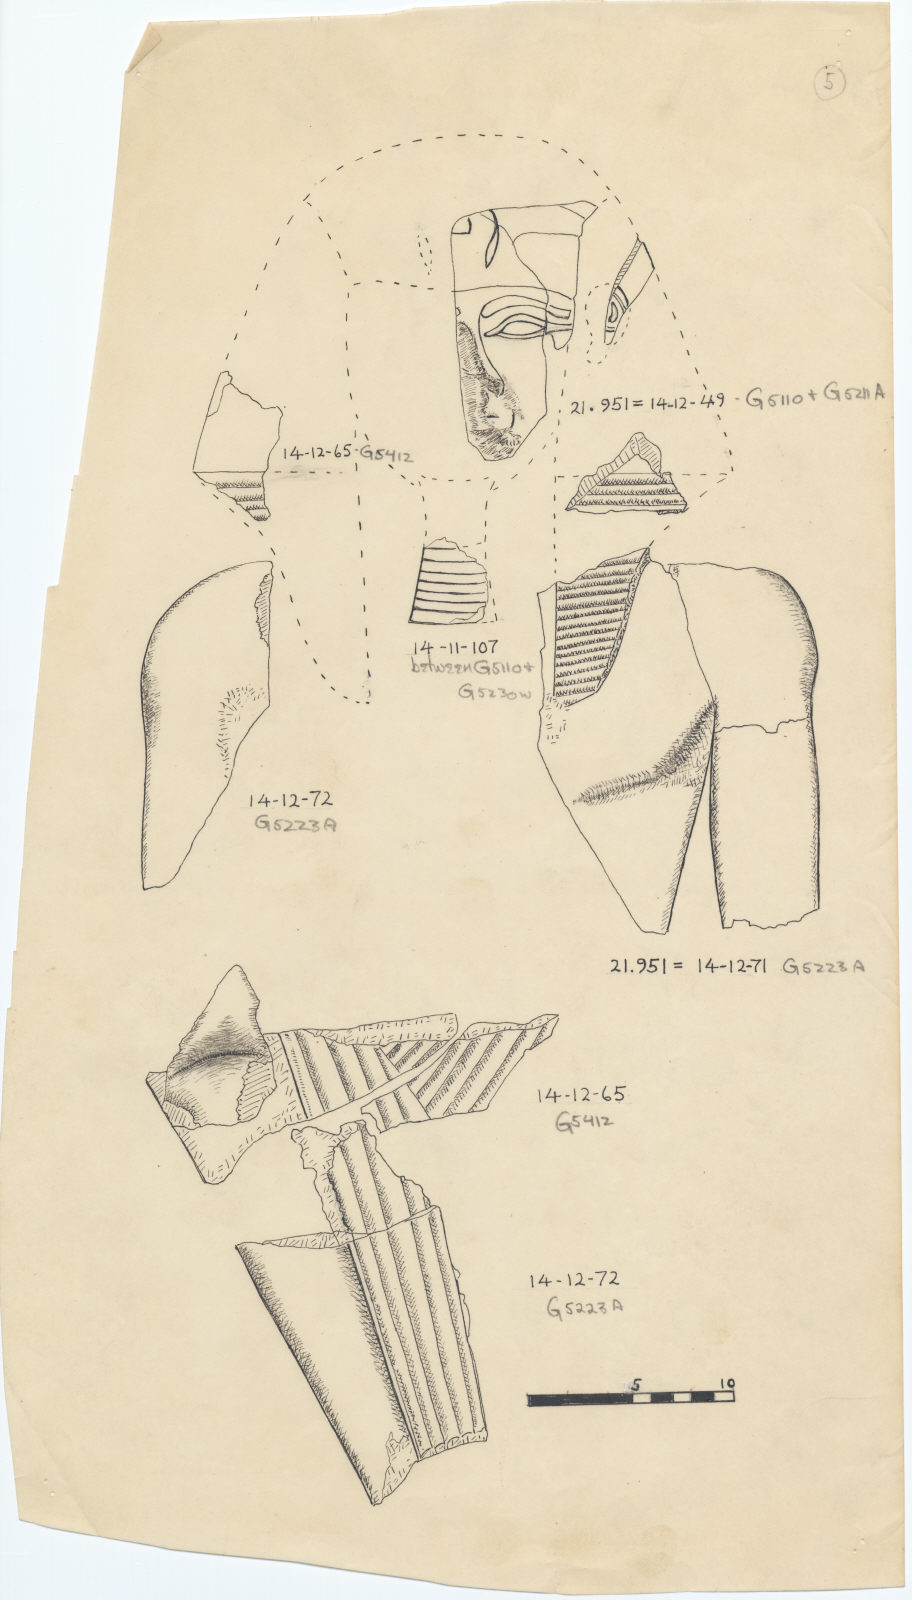 Drawings: Fragments of alabaster royal statuary from G 5110, G 5211 A, G 5223 A, G 5412, between G 5110 and 5230 W, G ____, and G ____